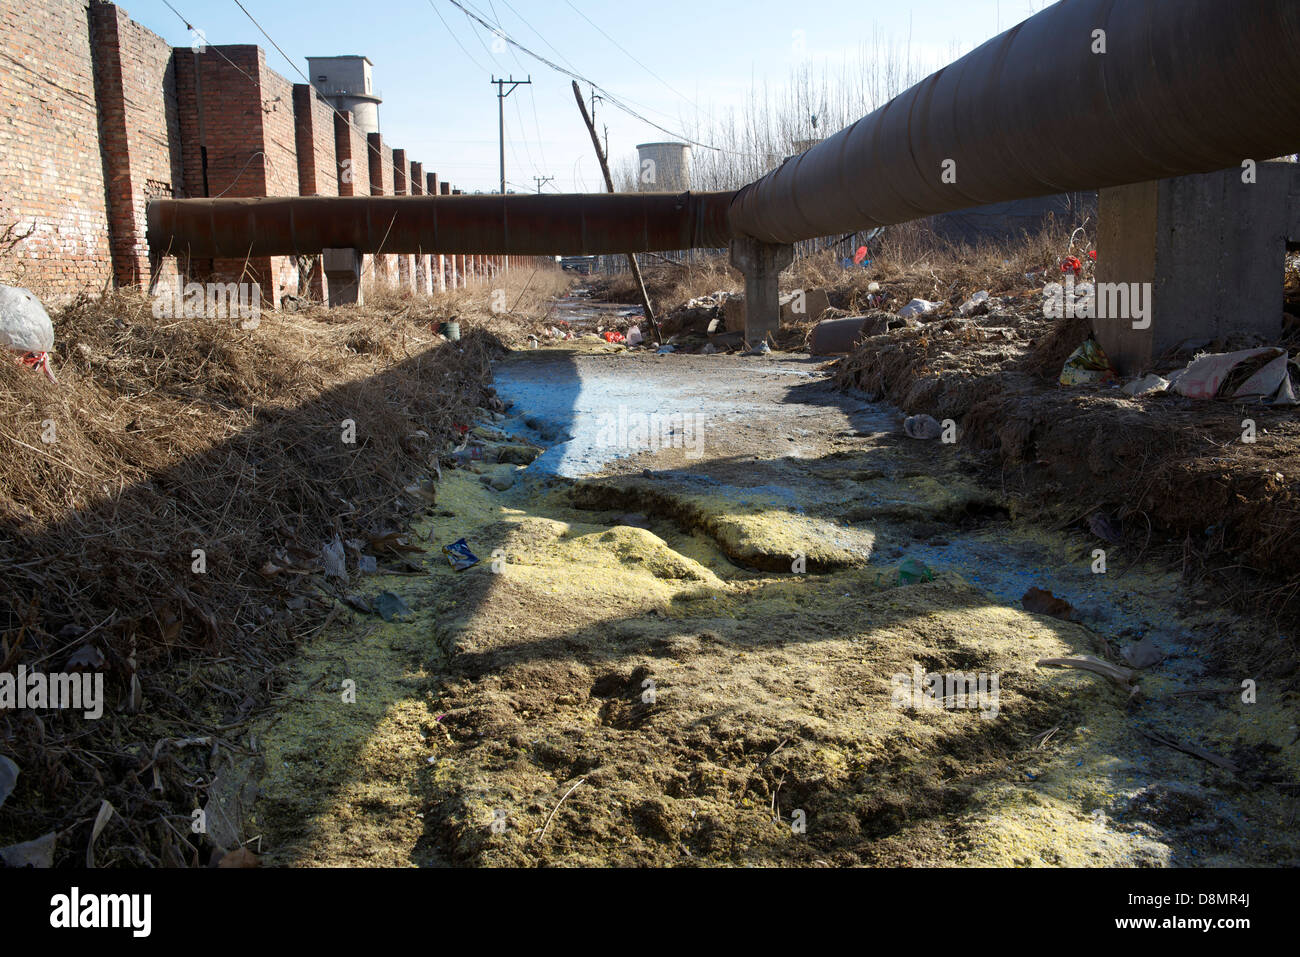 A badly polluted ditch between a Monosodium Glutamate Factory and a small chemical fertilizers factory in a village - Stock Image